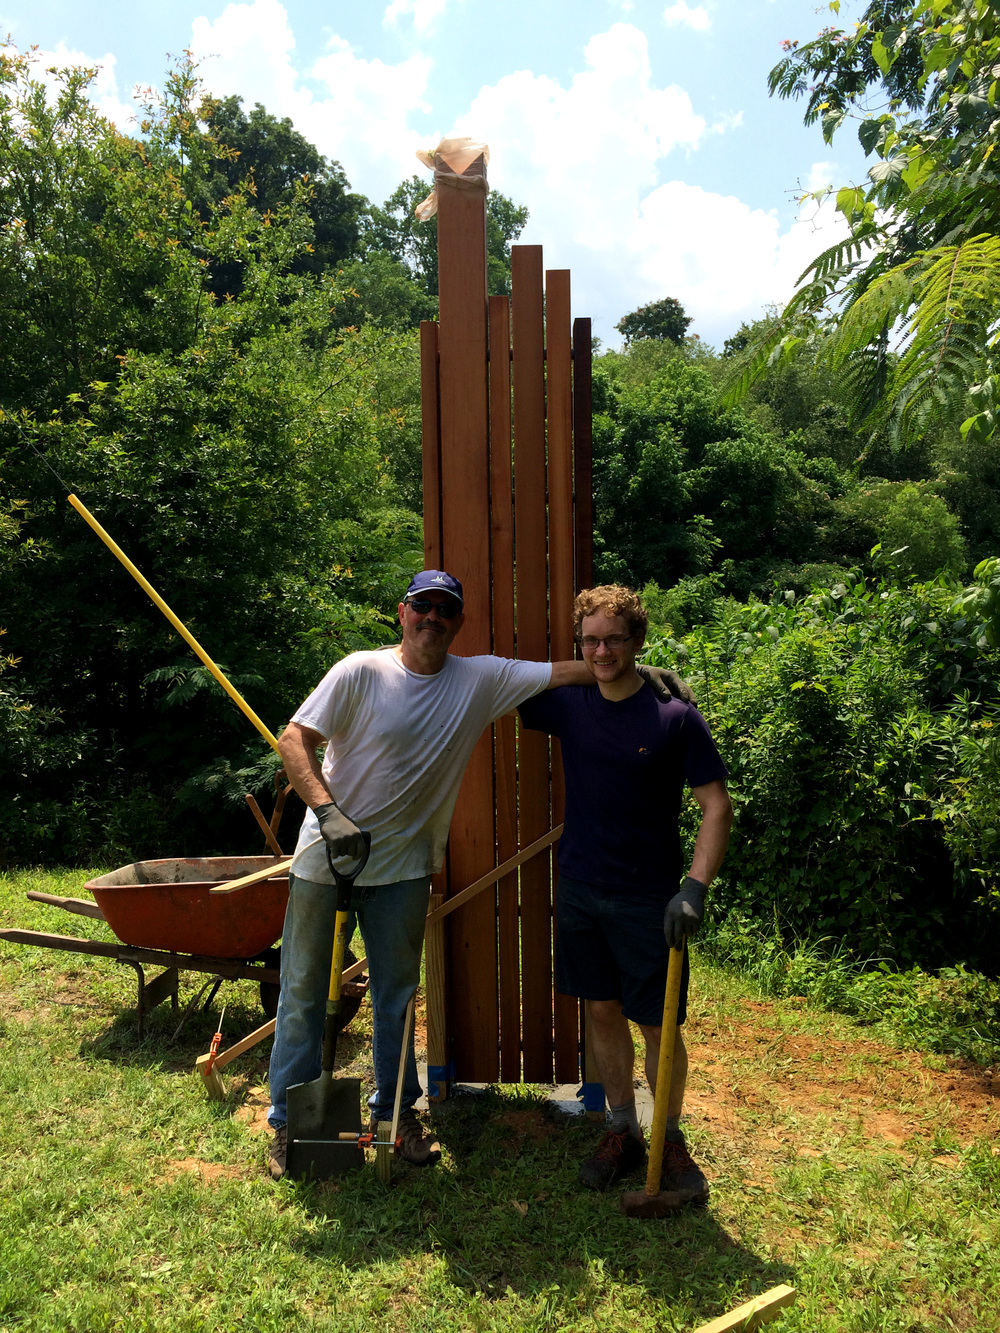 June 2014: Michael Montgomery and James Lismore at our first trailhead sign on the Meadow trail